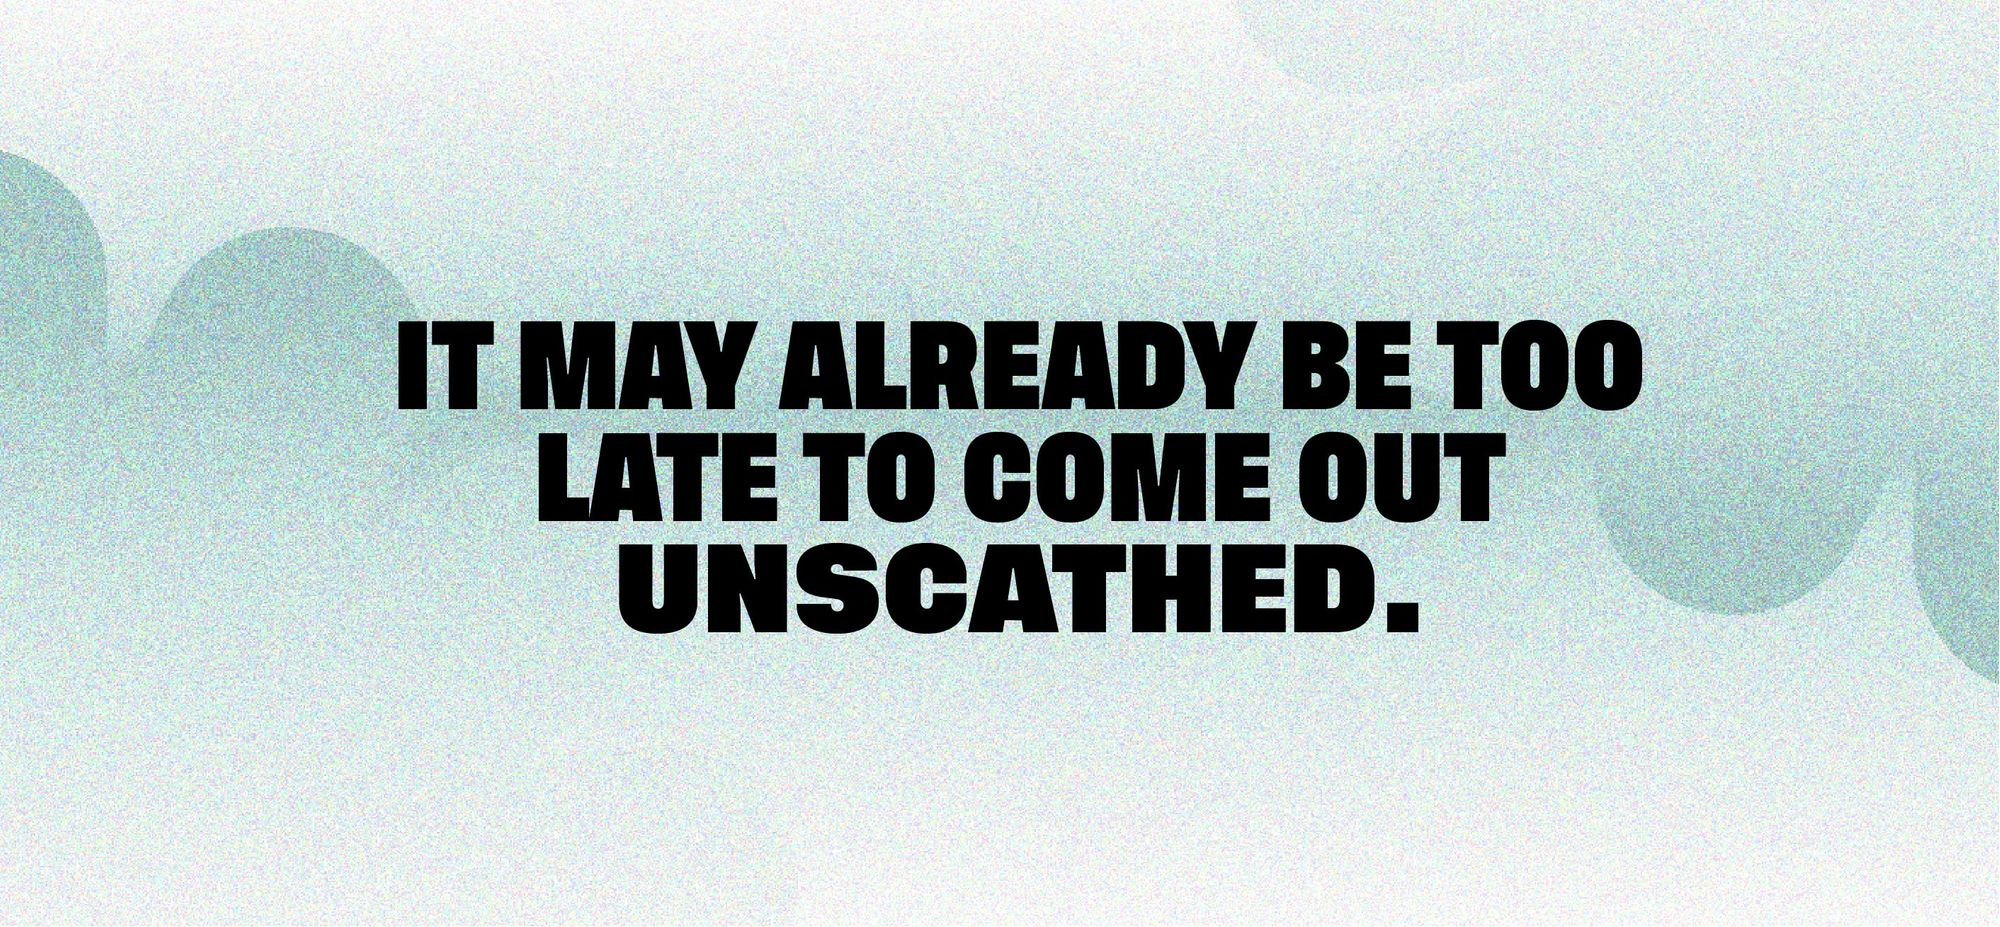 It may already be too late to come out unscathed.</PQ>